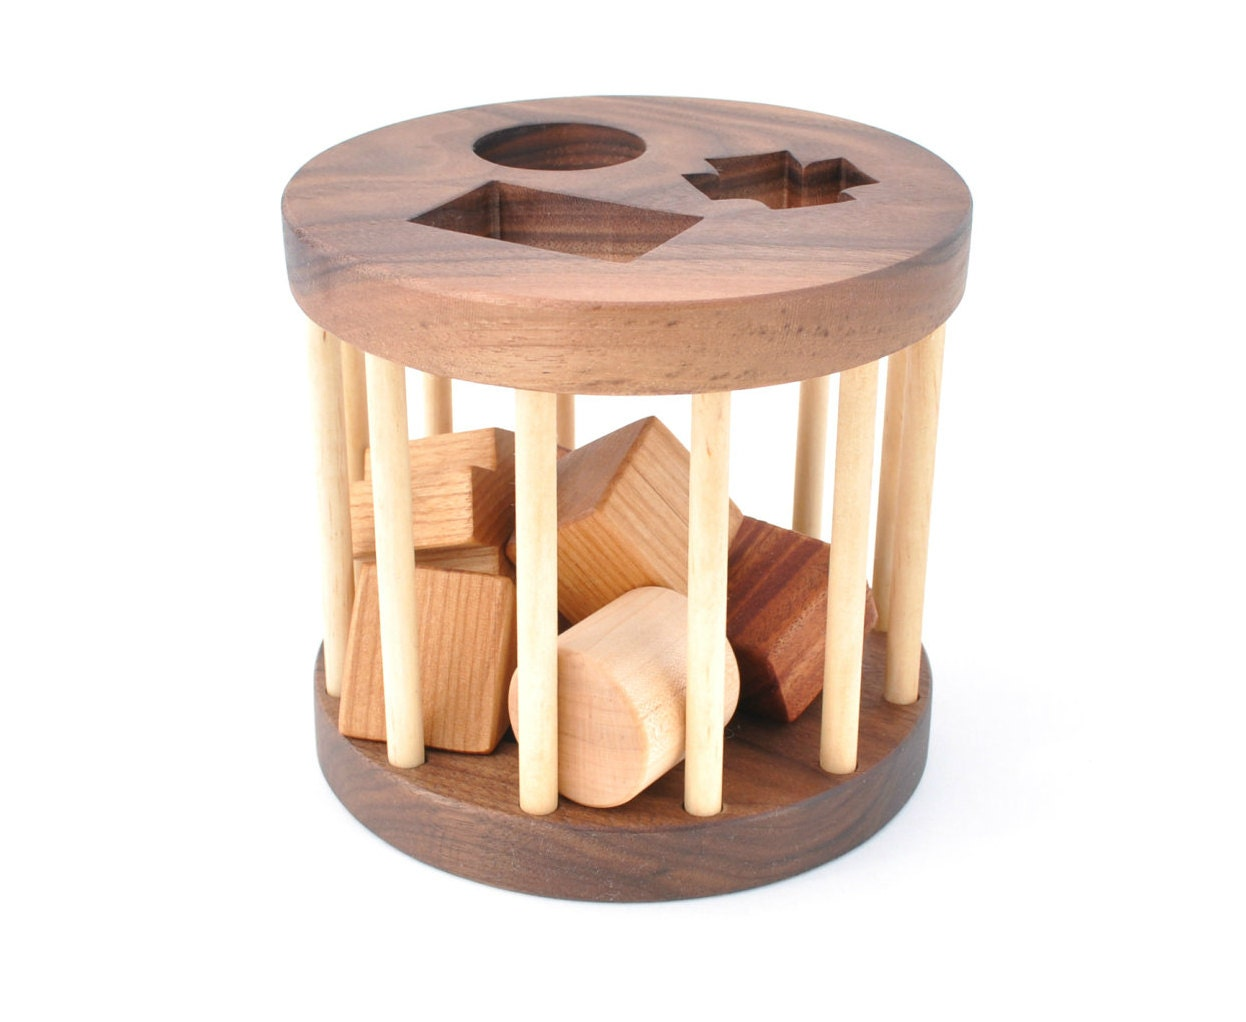 Wooden Shape Sorter Toy Montessori Inspired Educational Toy